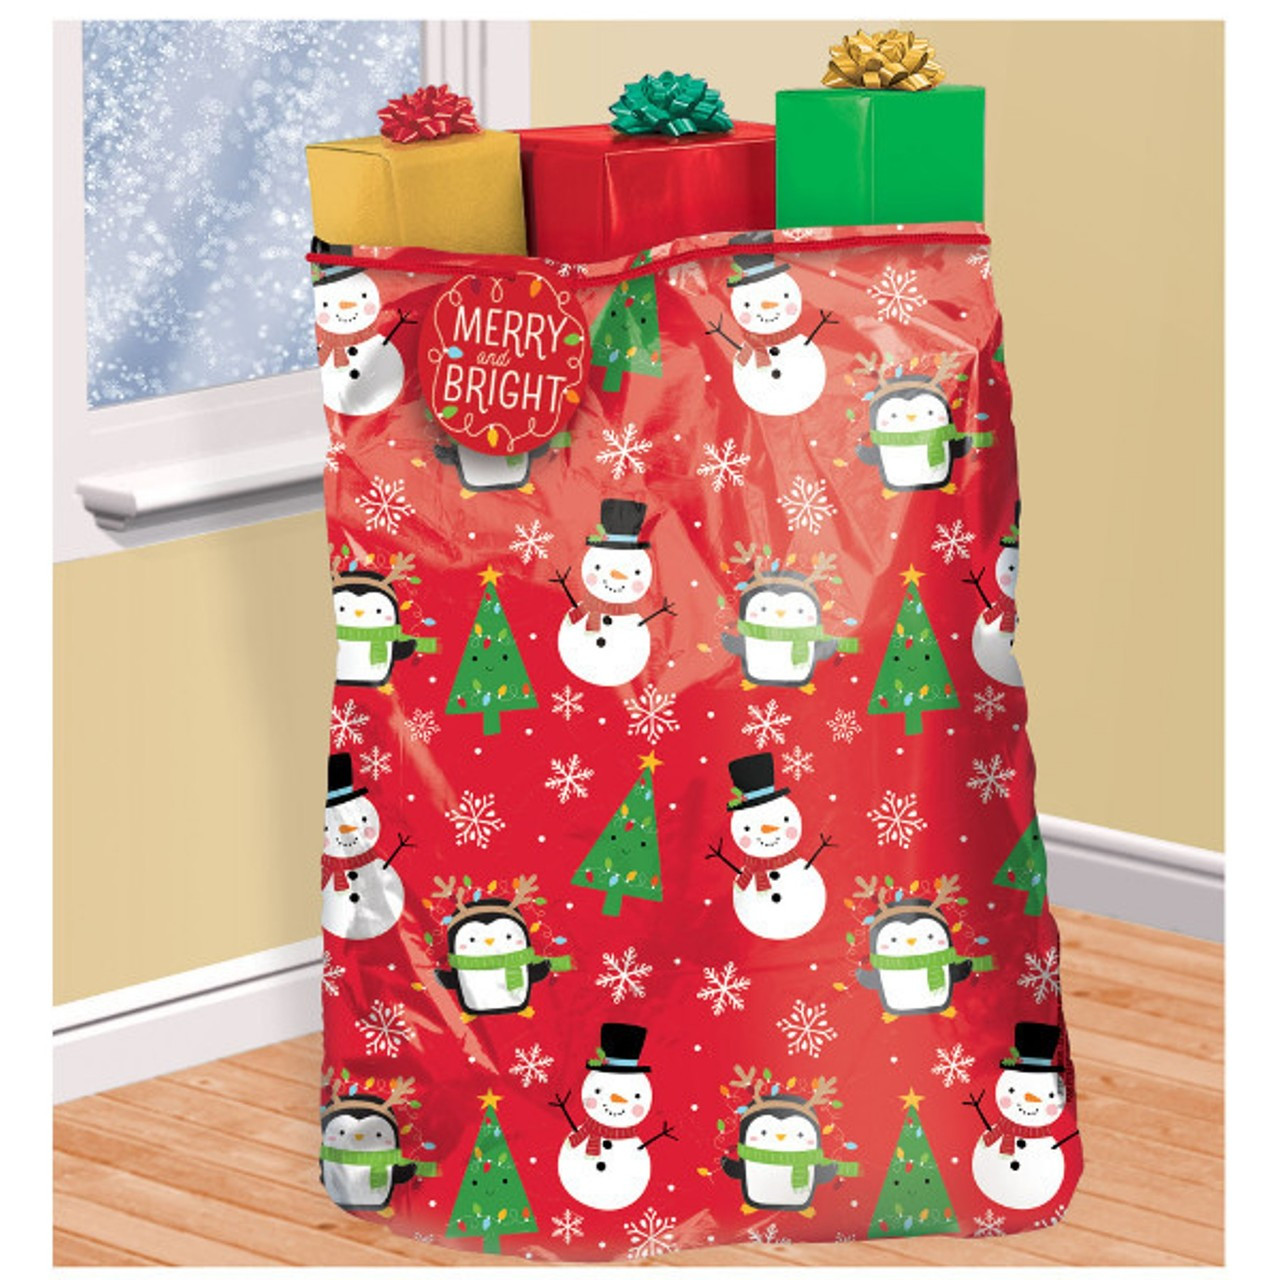 Christmas Gift Bags.Snowy Friends Super Giant Christmas Gift Bag Tag Tie 44 X 56 Plastic Sack